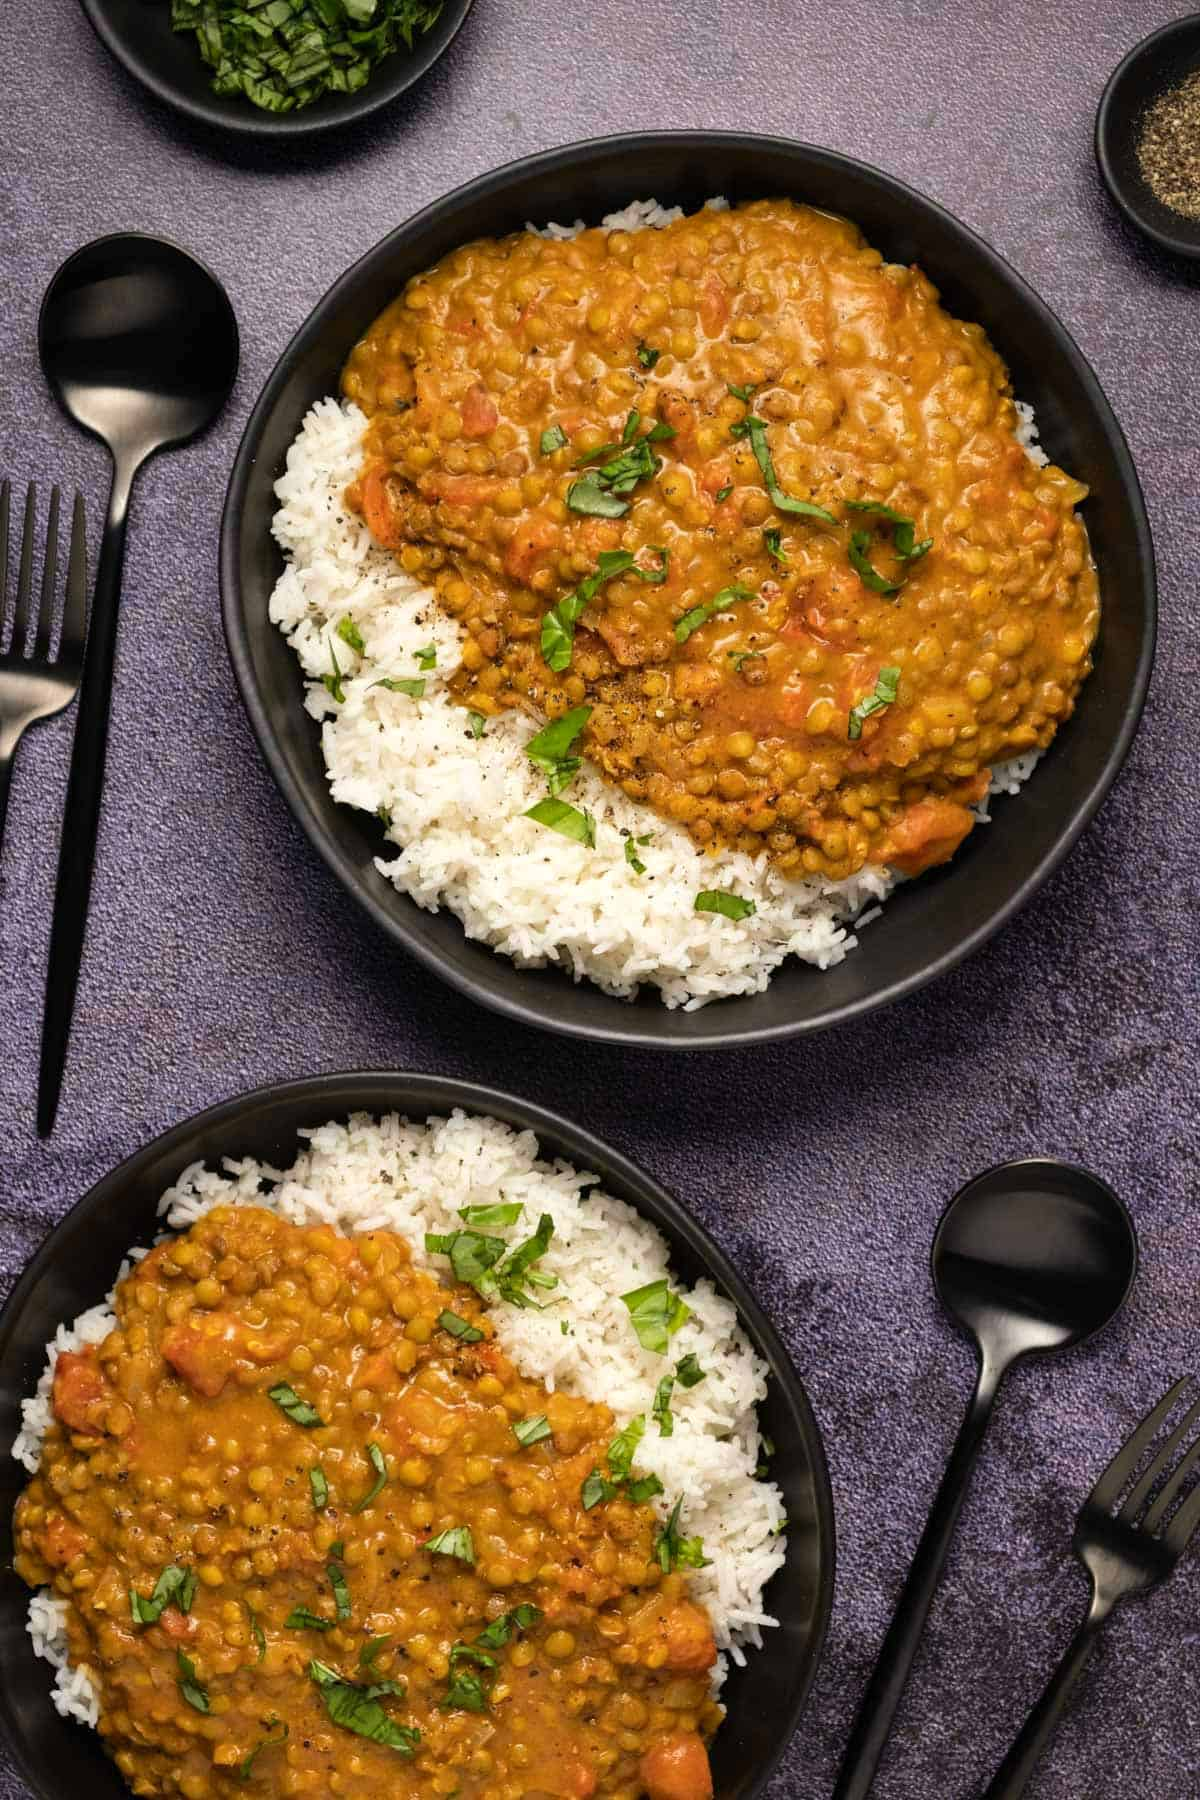 Lentil curry with rice in a black bowl.